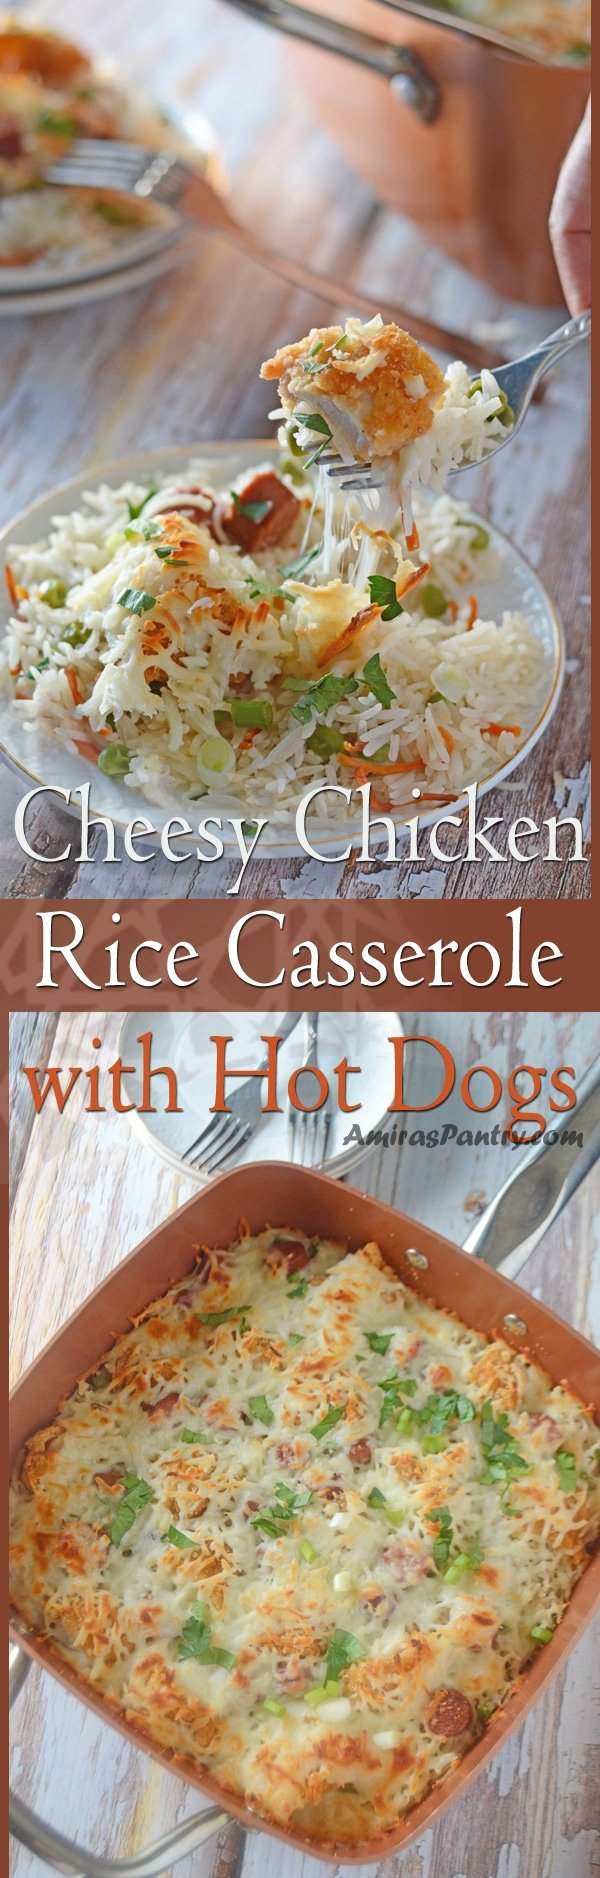 Cheesy Chicken Rice Bake, loaded with veggies, chicken and hot dogs. A family favorite, kids approved an all you can eat dinner in one pot.